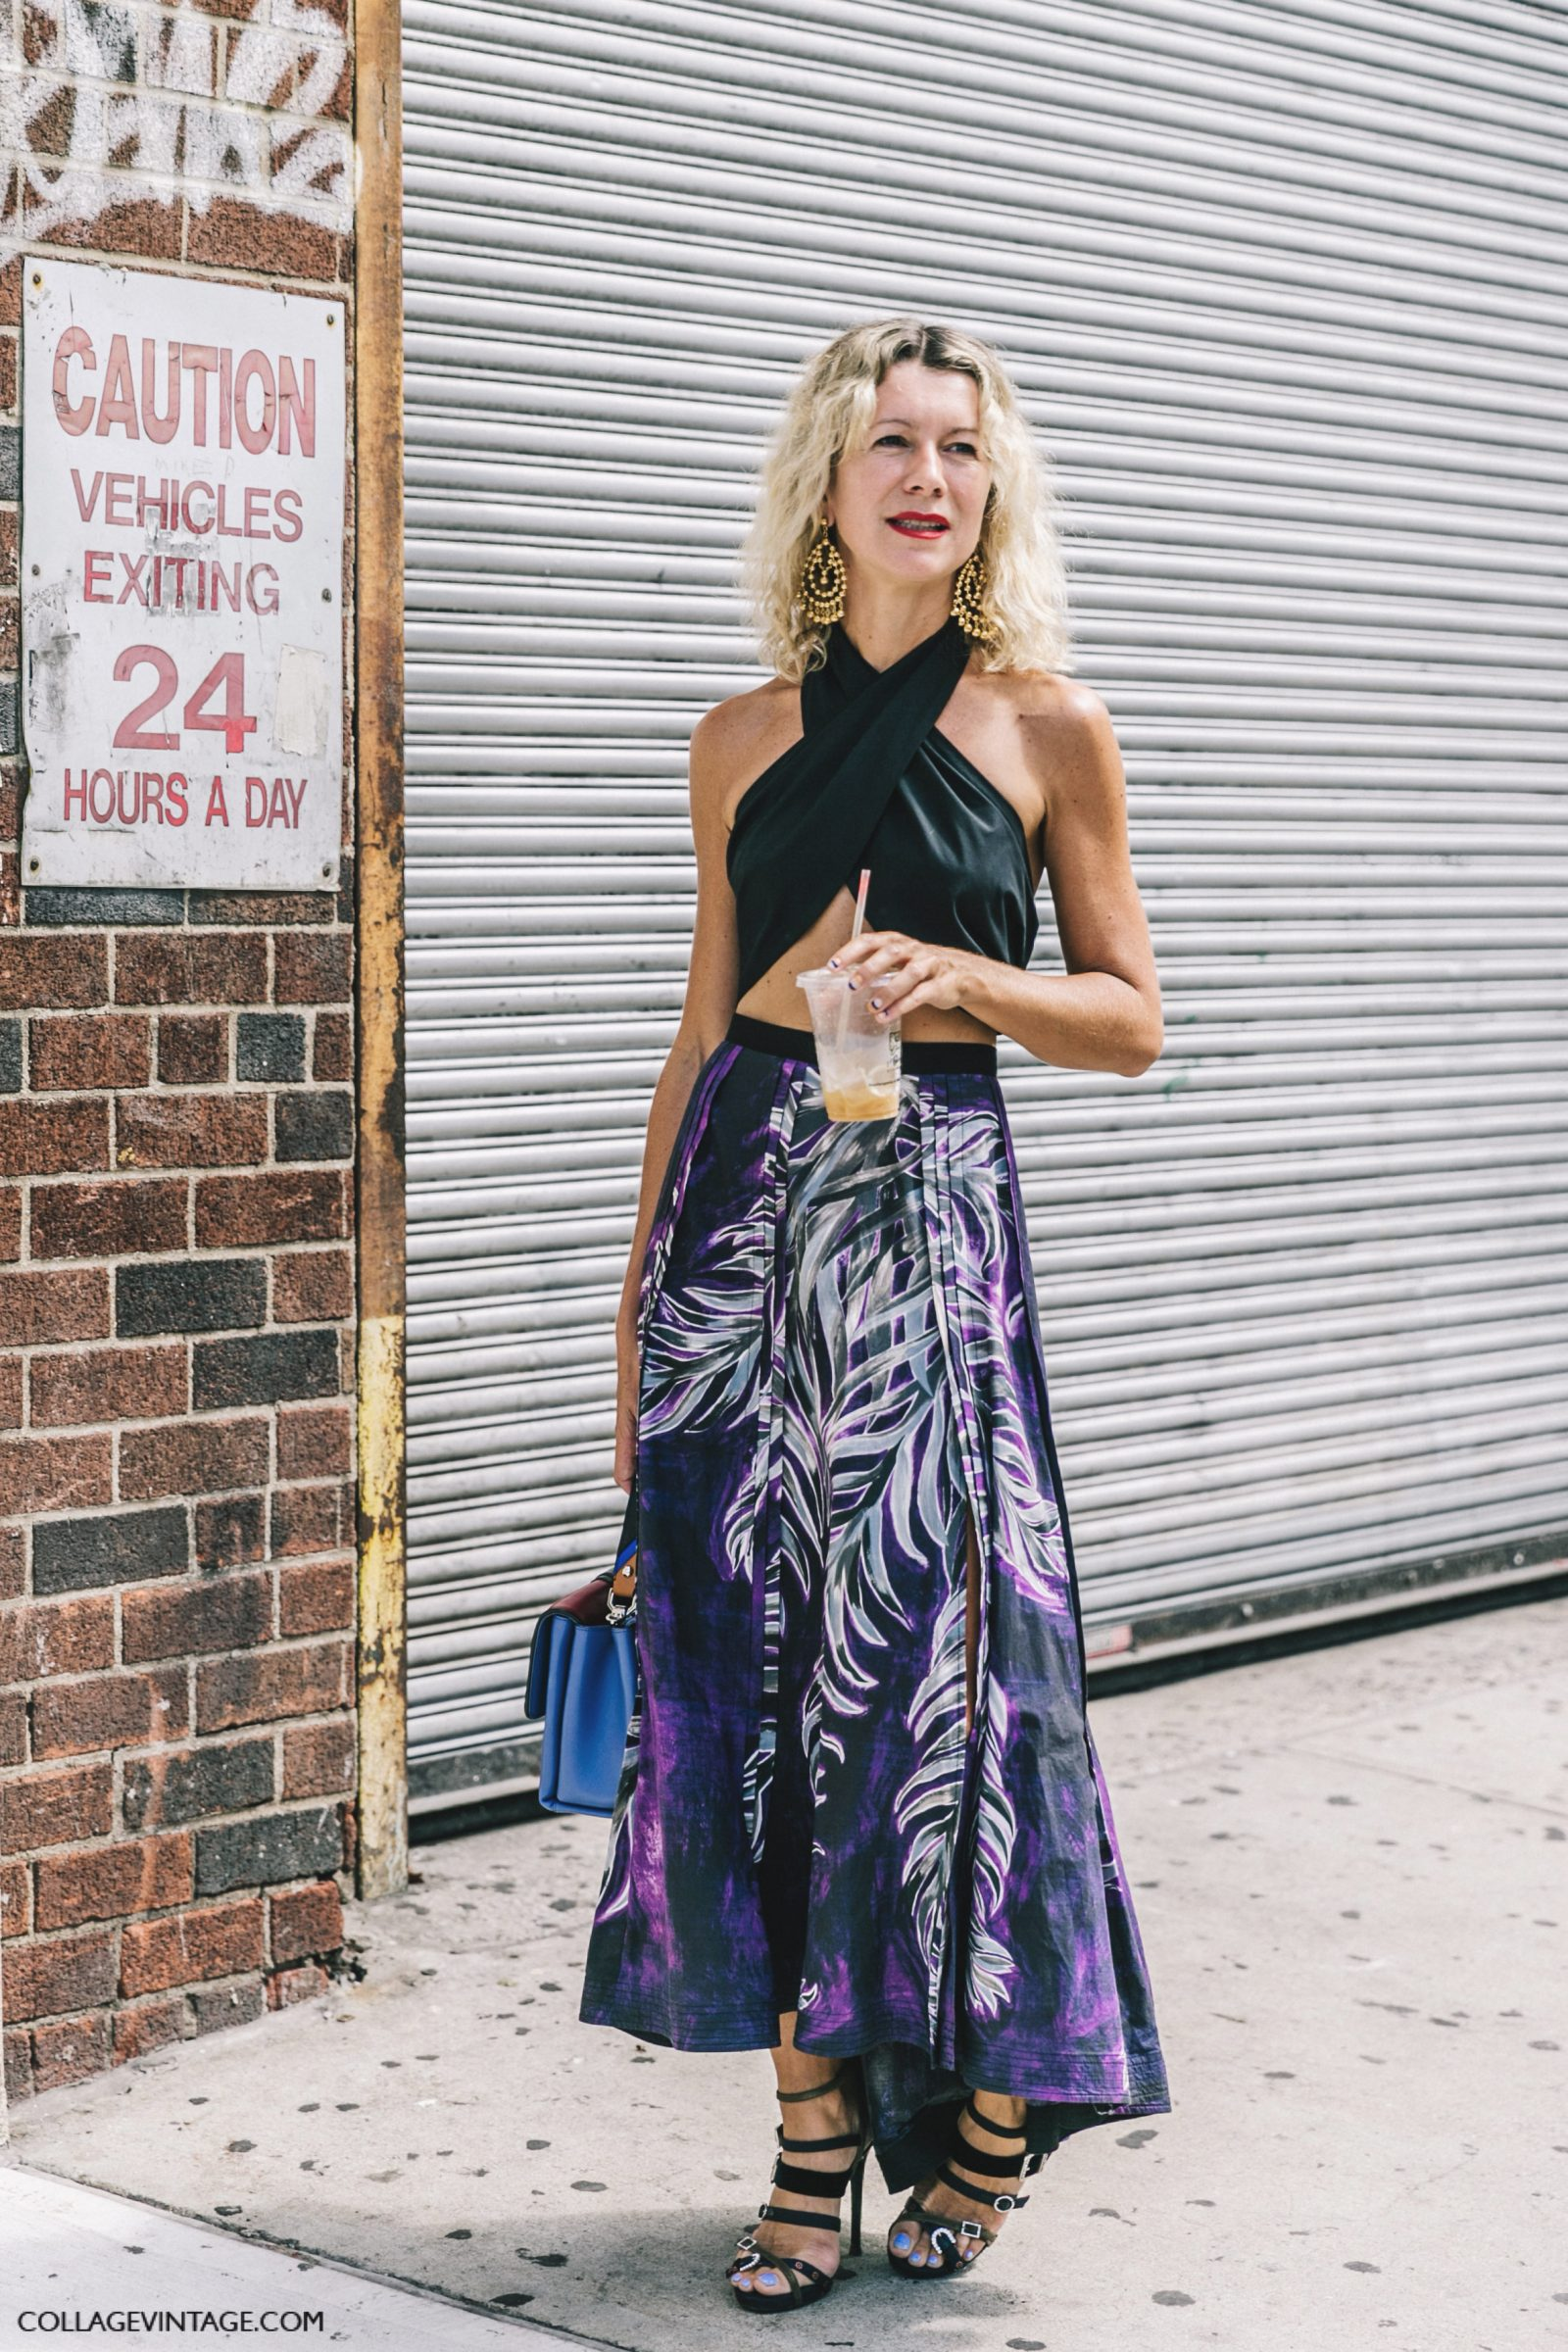 nyfw-new_york_fashion_week_ss17-street_style-outfits-collage_vintage-natalie_jobs-crop_top-long_skirt